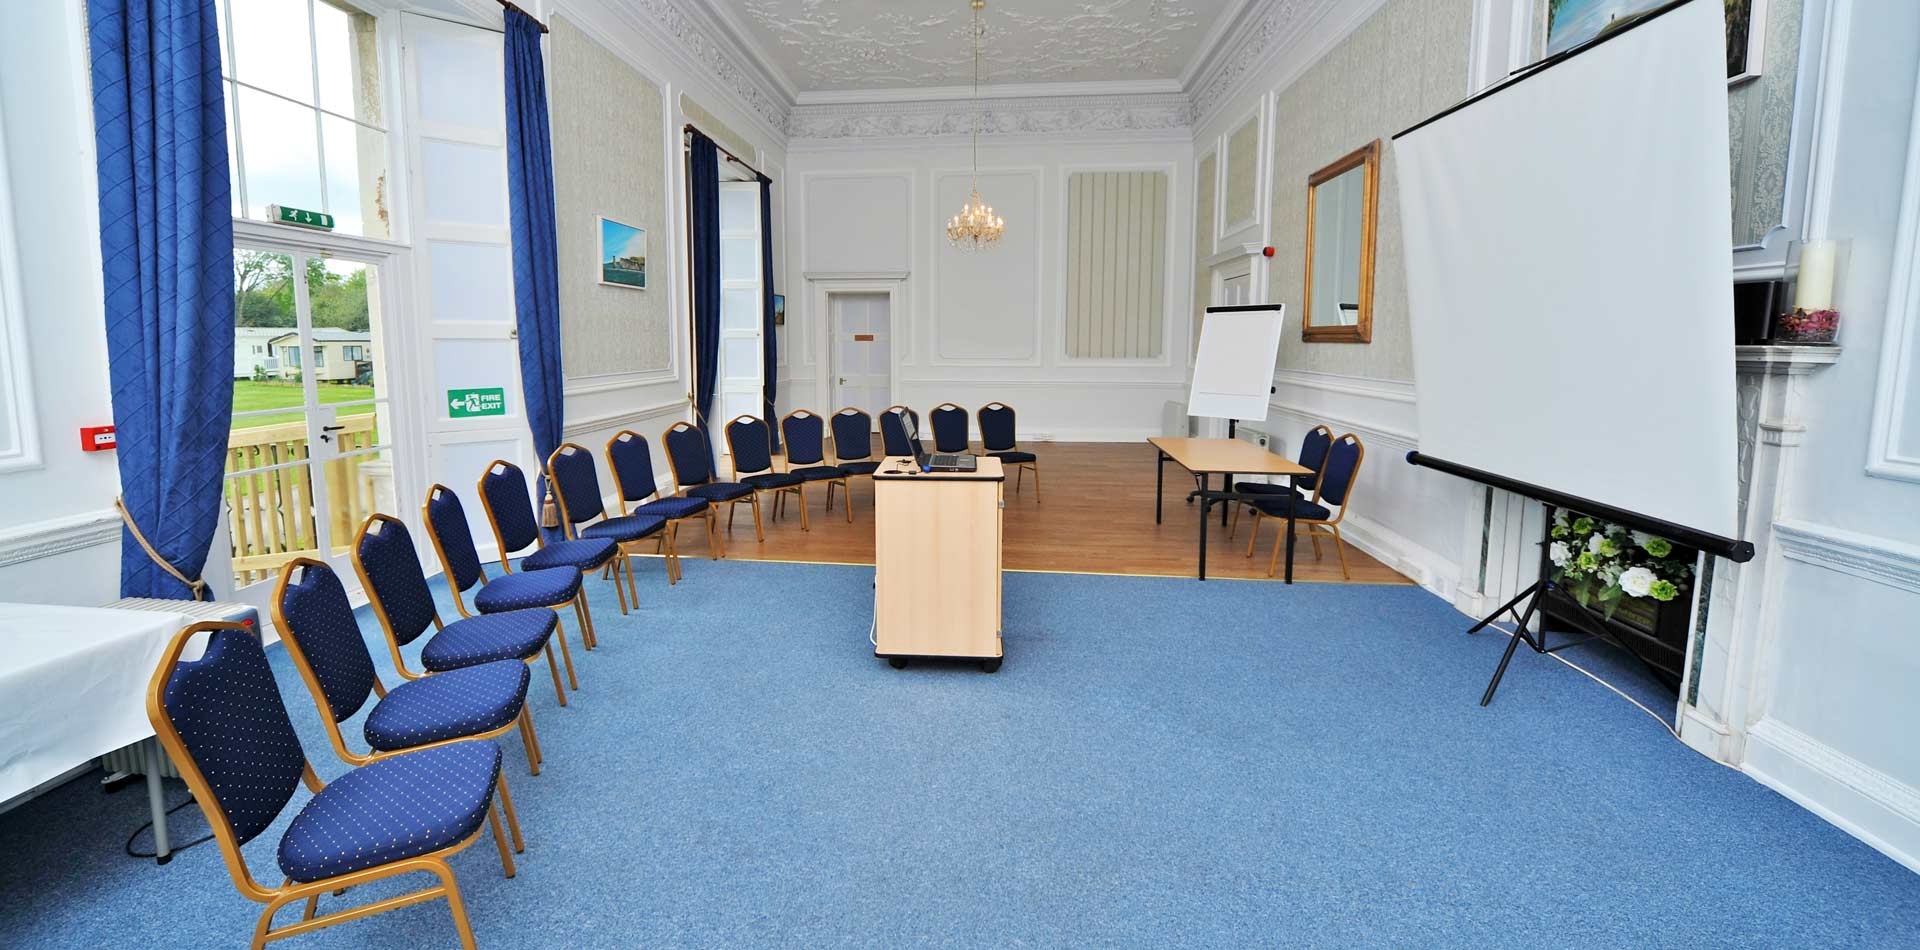 Merley House Business Meeting Venue Dorset